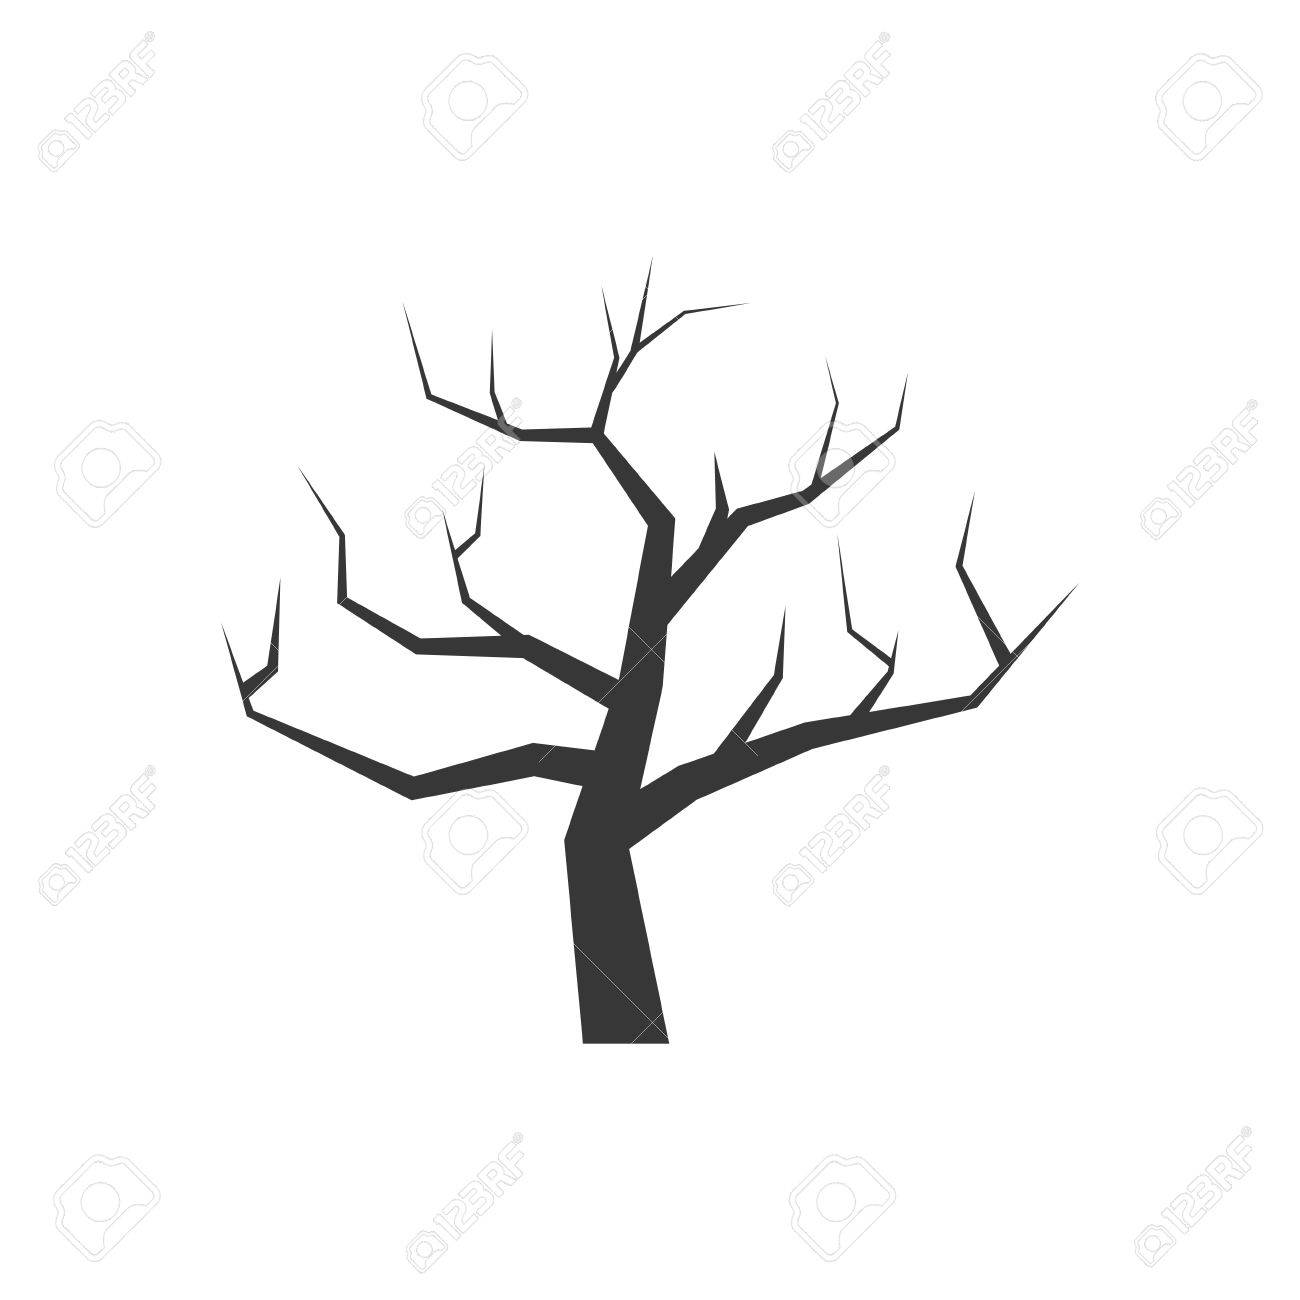 Nature and plant concept represented by dry tree icon. isolated and flat illustration - 59405728